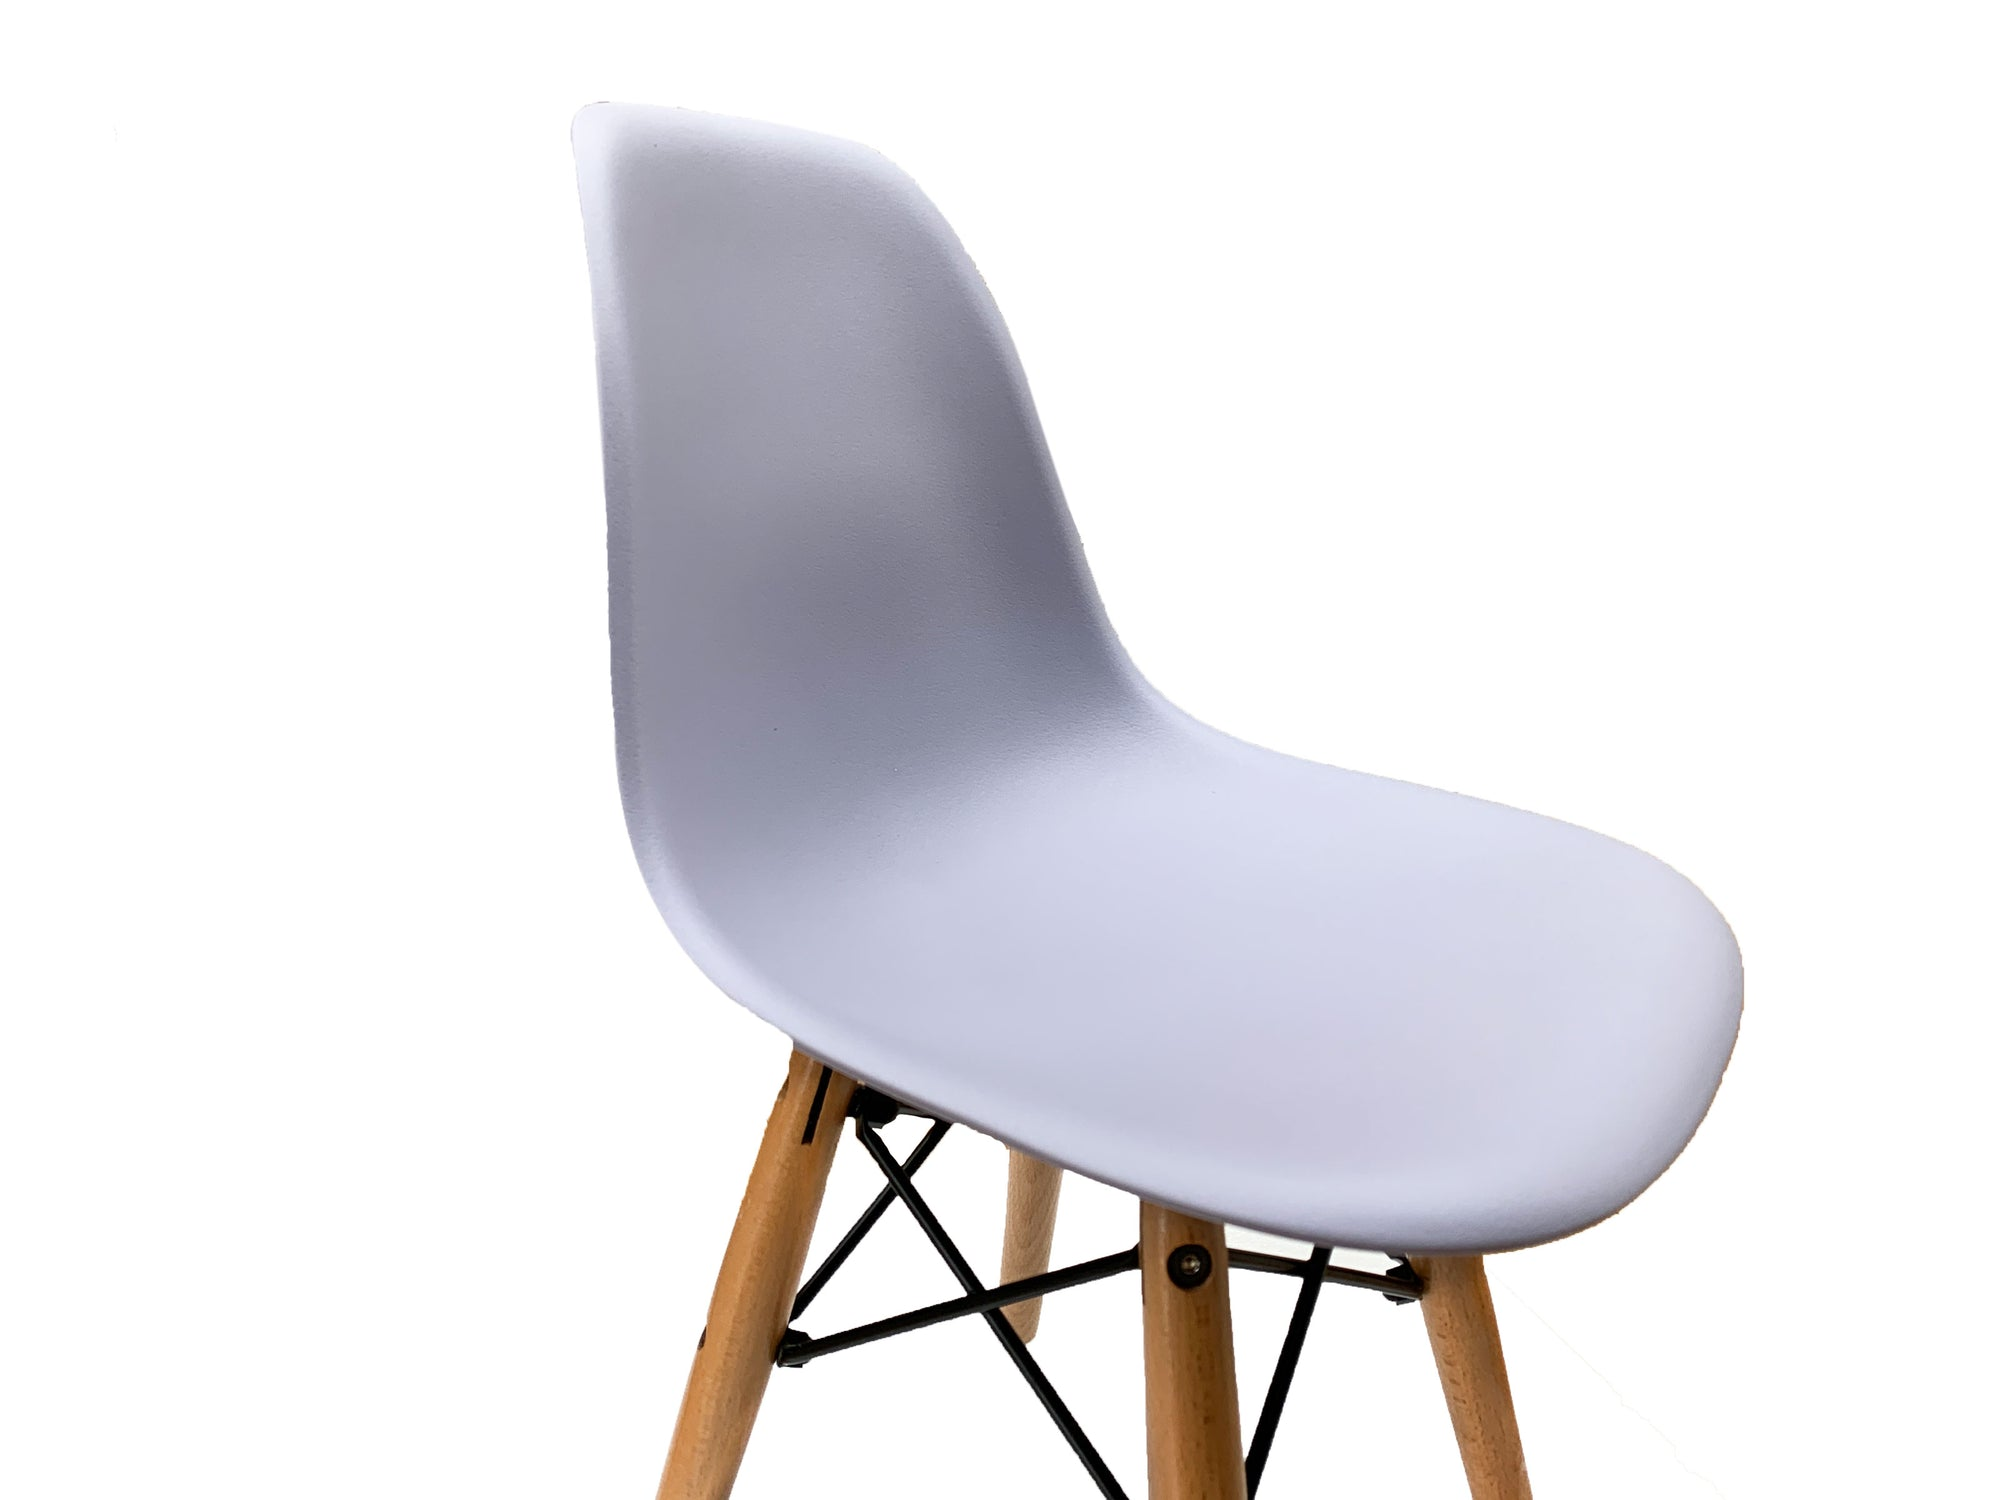 Kids Chair -Plastic- MSK0055B PC-0117W-B -  كرسي اطفال - بلاستيك - Shop Online Furniture and Home Decor Store in Dubai, UAE at ebarza